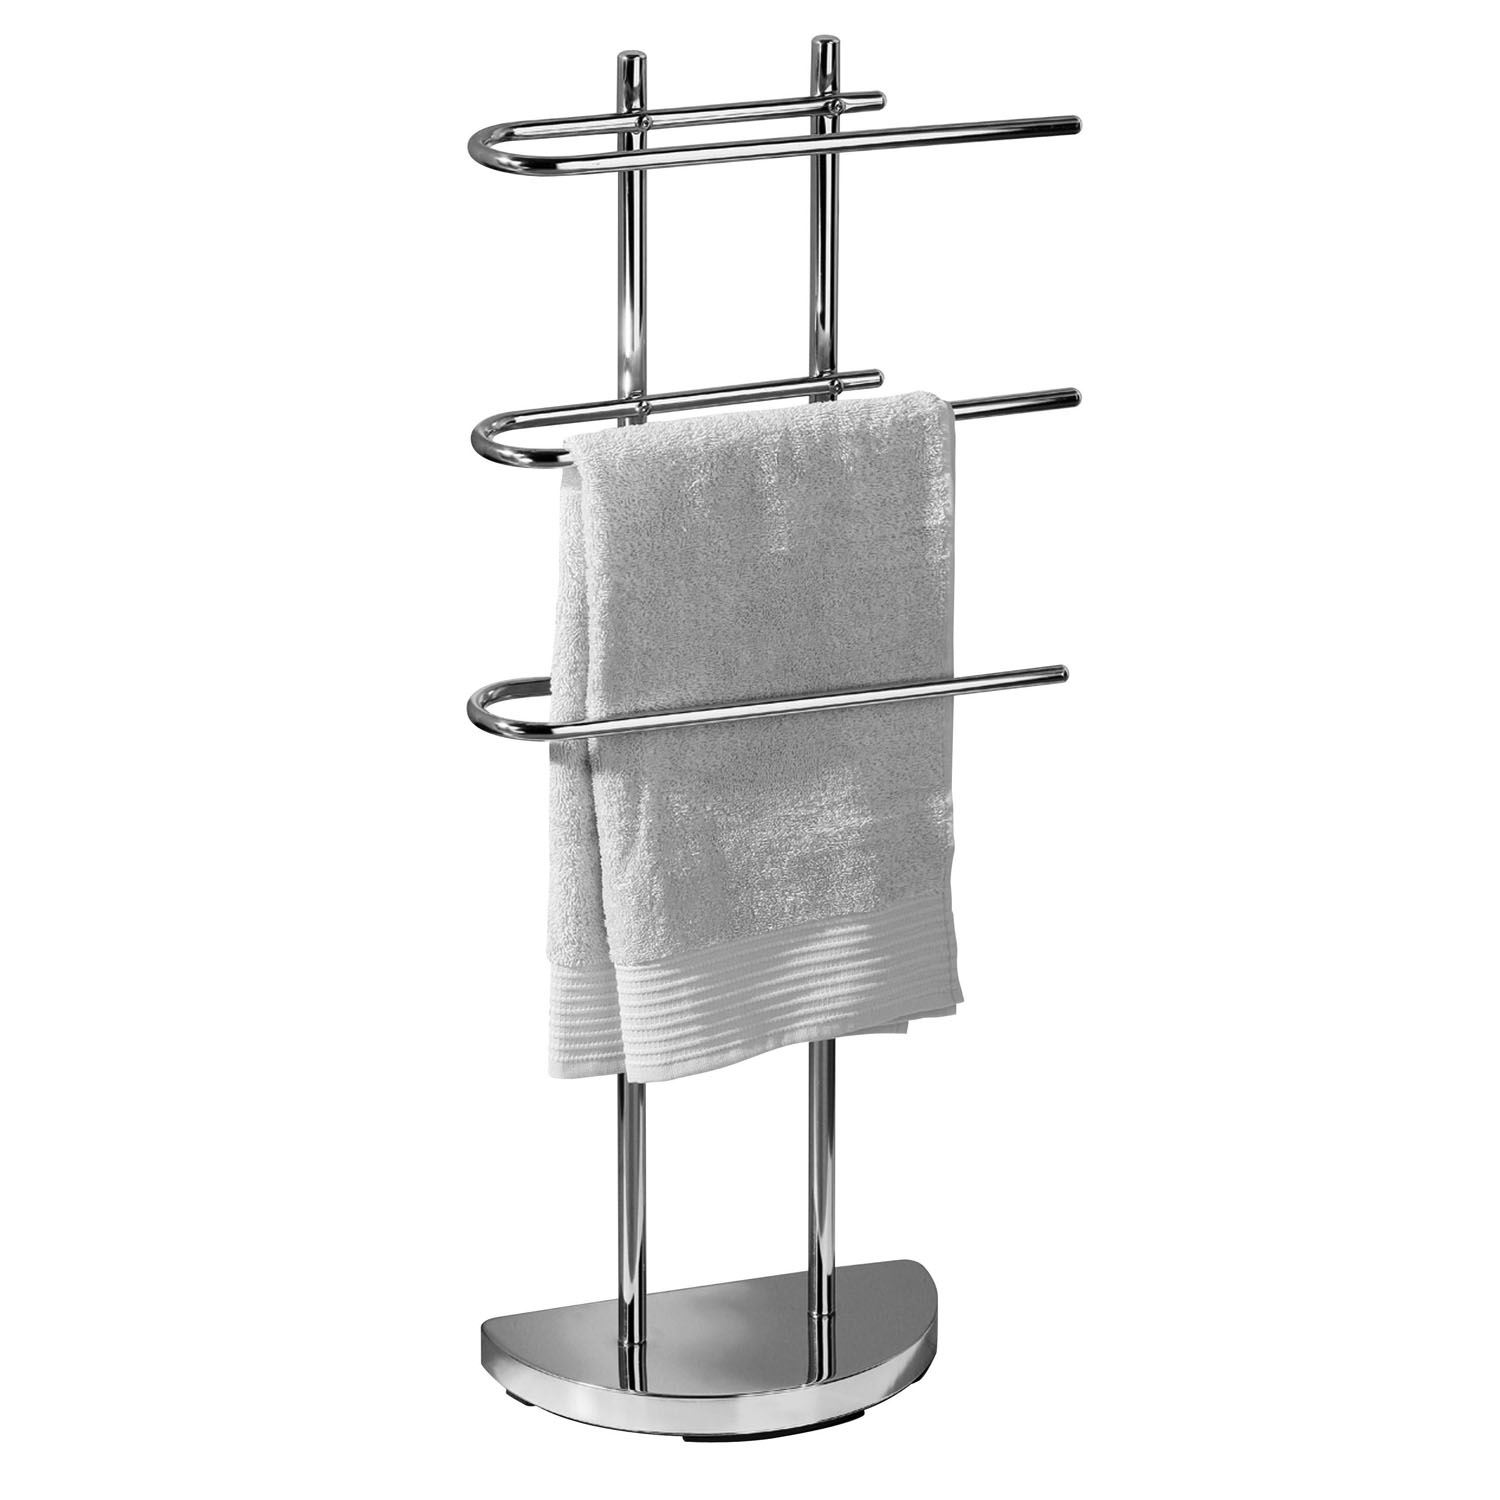 3 arm free standing chrome towel rail stand bathroom - Free standing bathroom towel rack ...